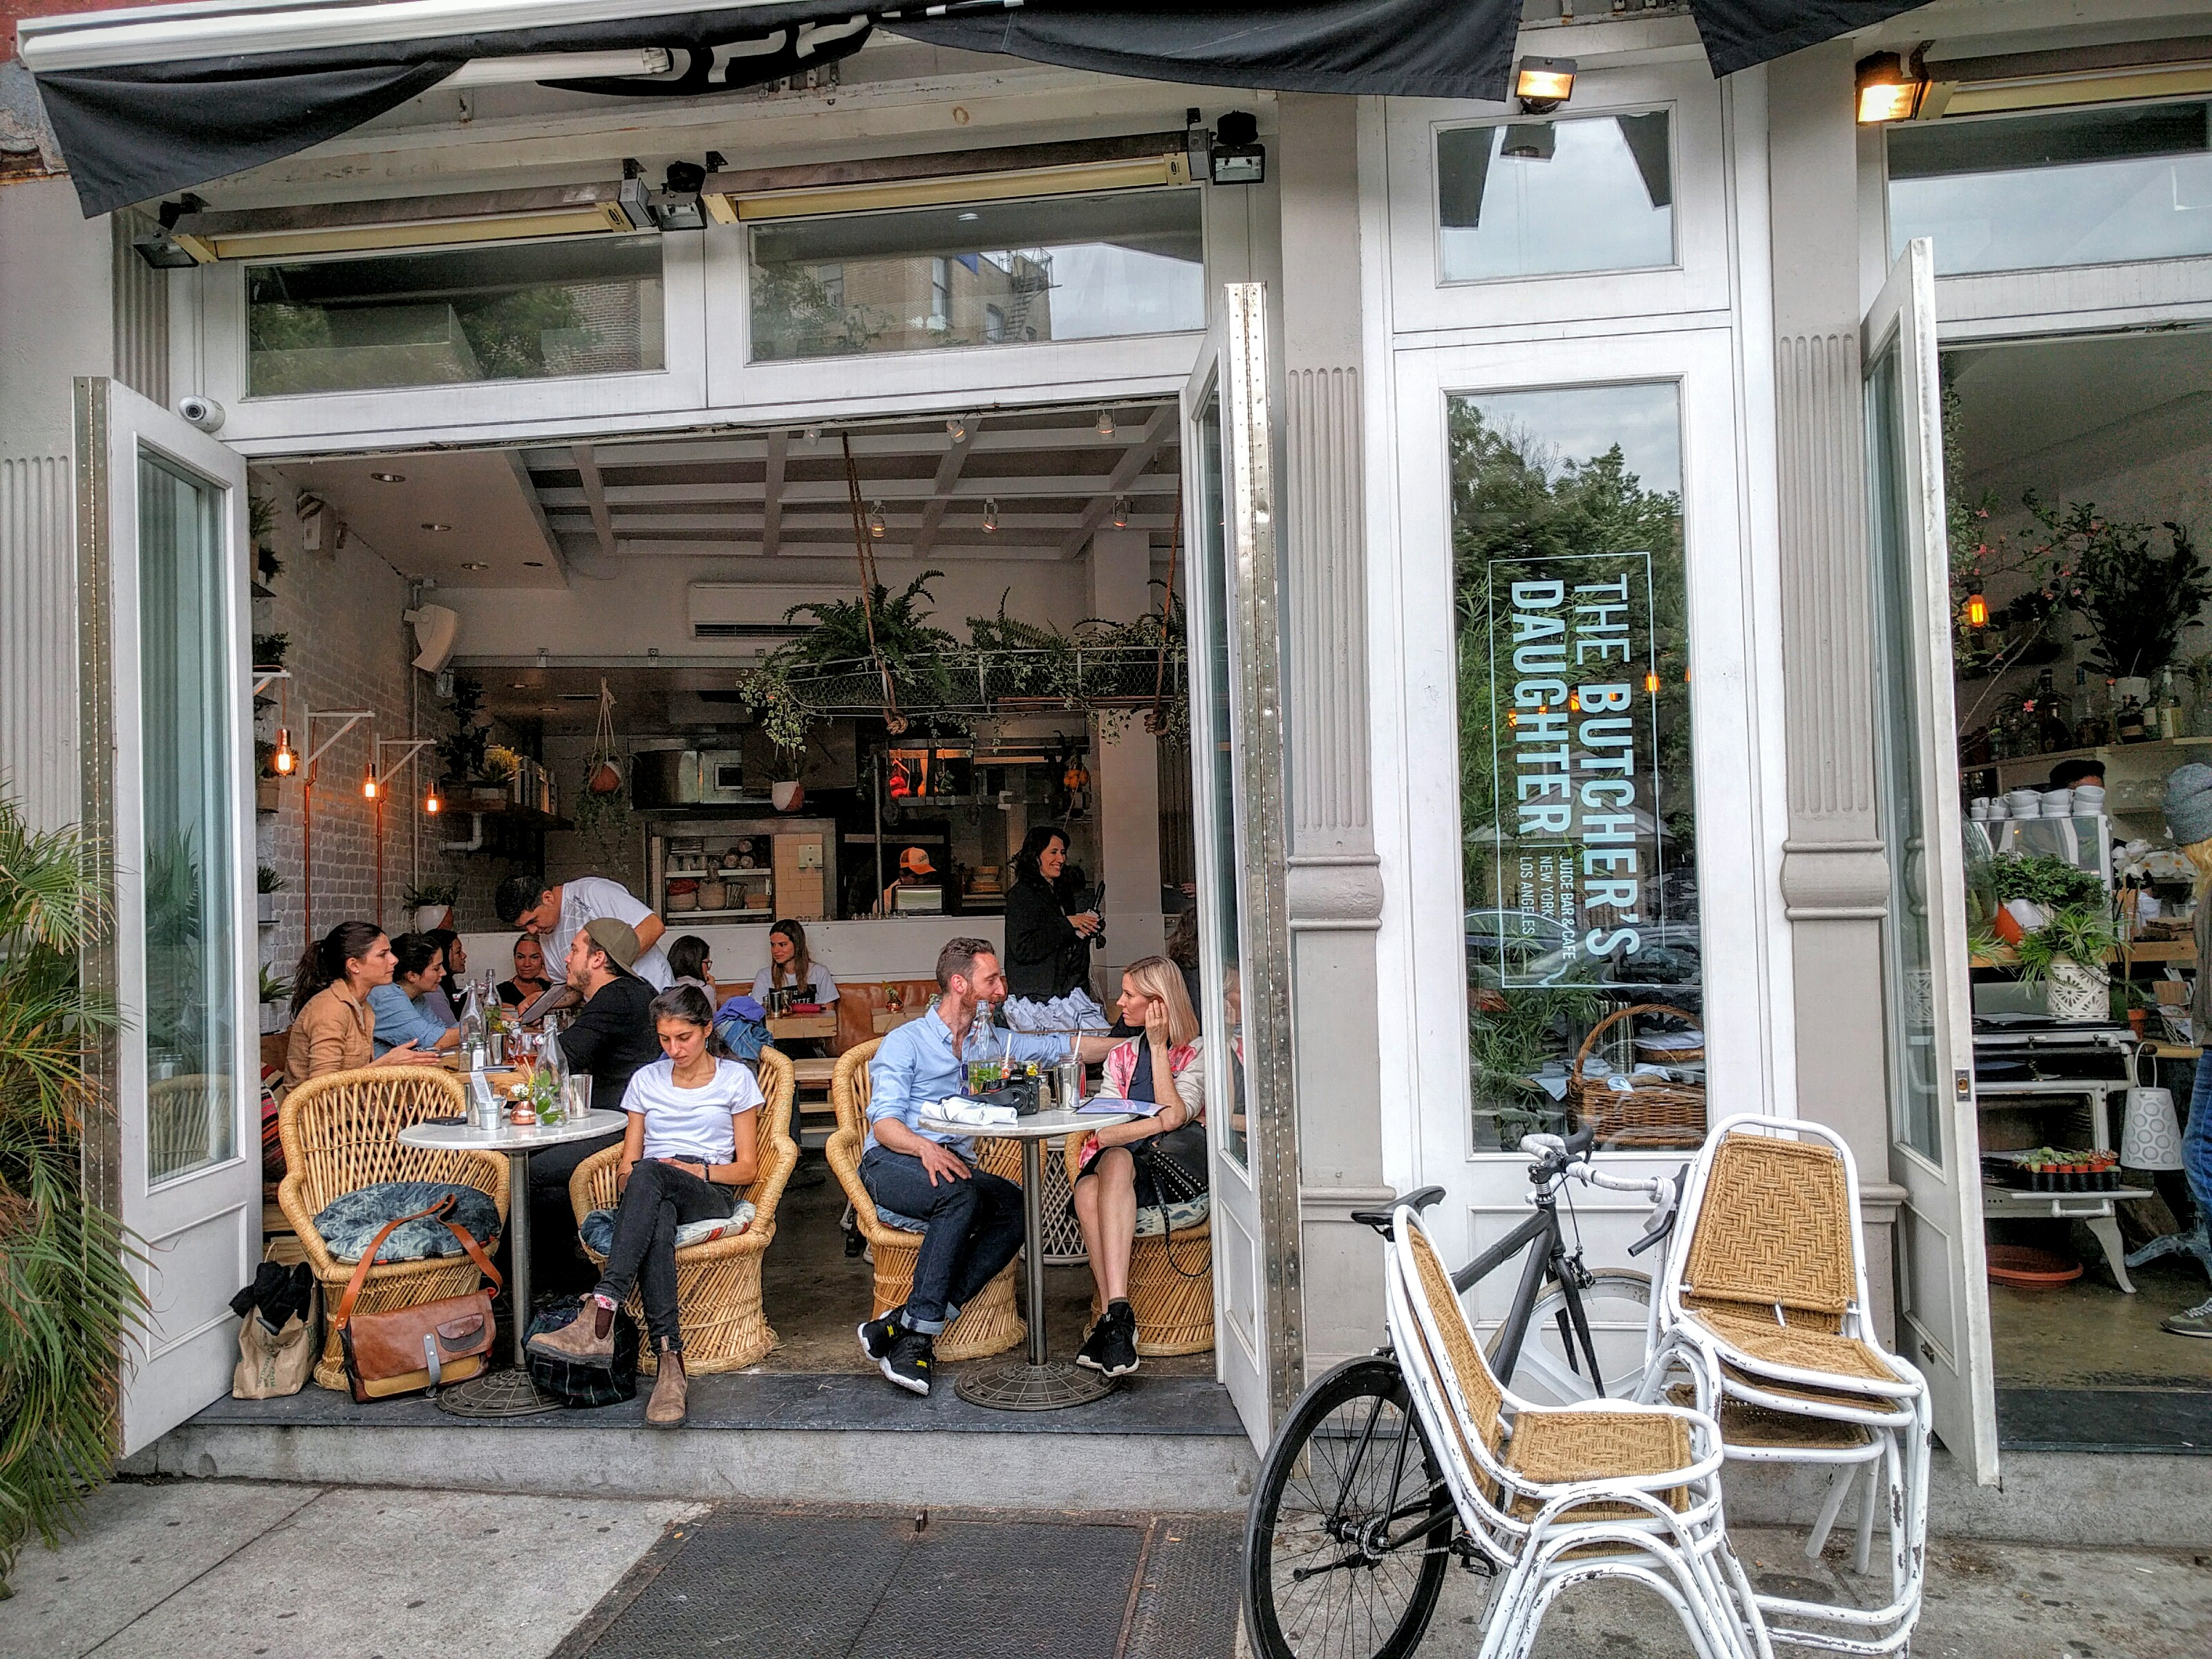 [The West Village location of The Butcher's Daughter, in full swing]